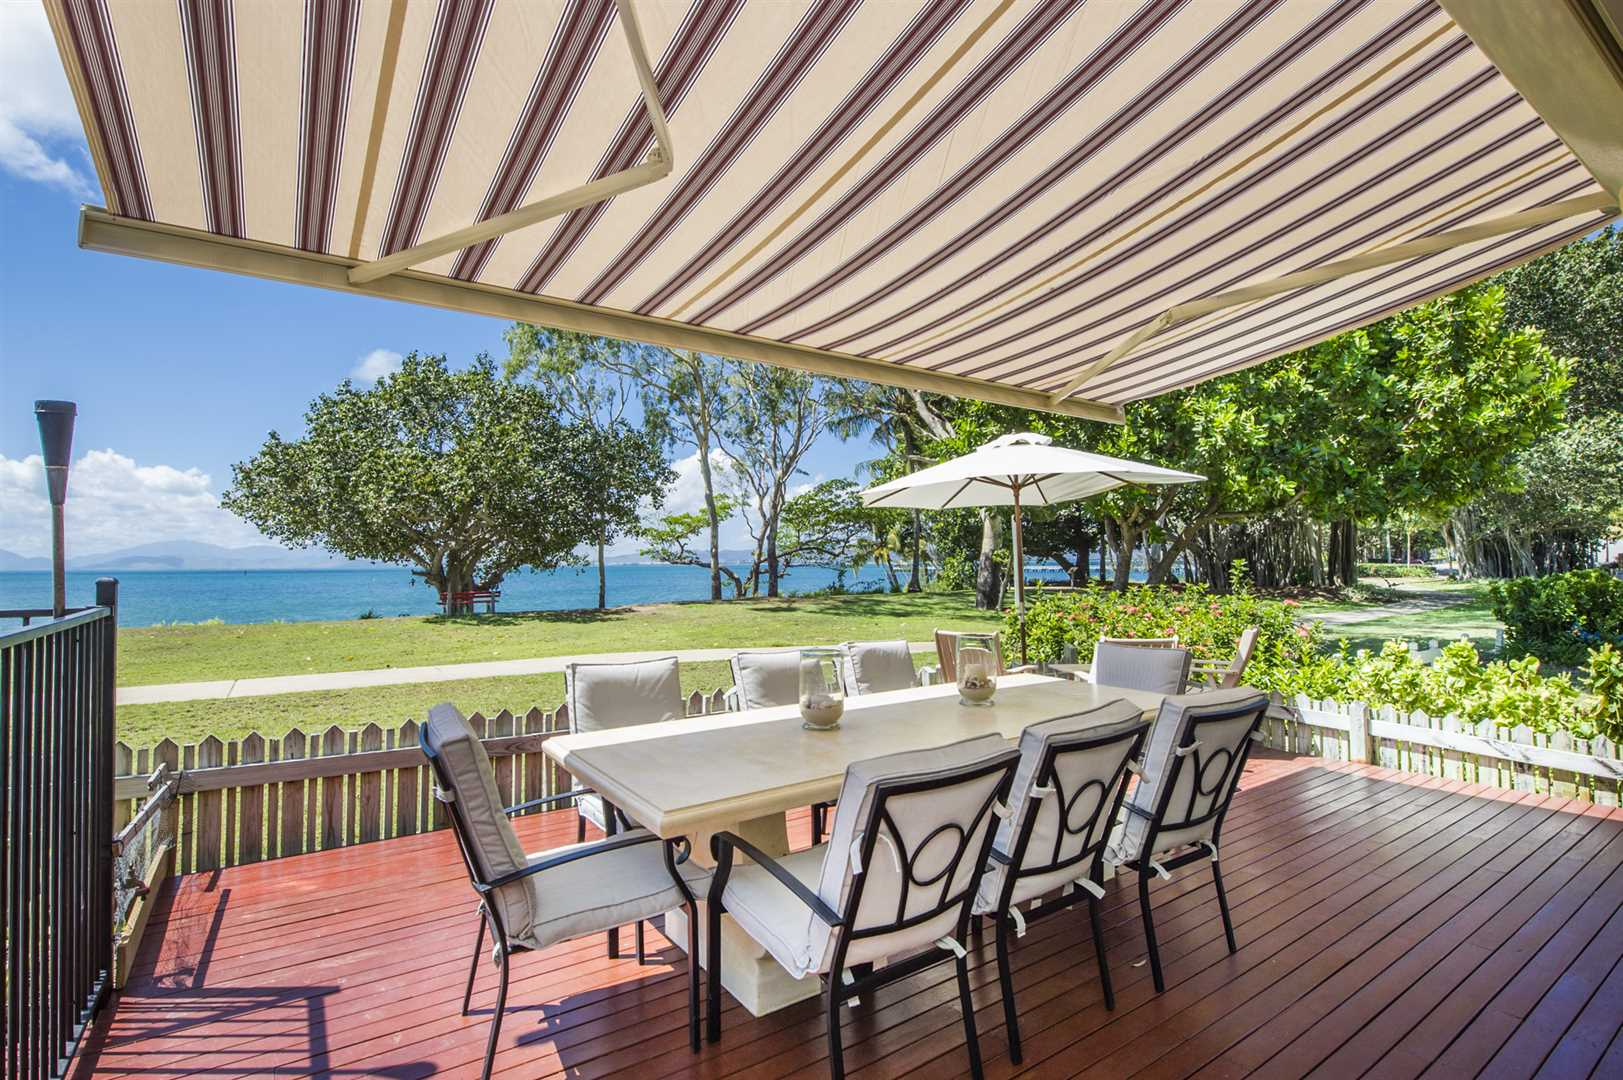 Outdoor entertaining area with awning